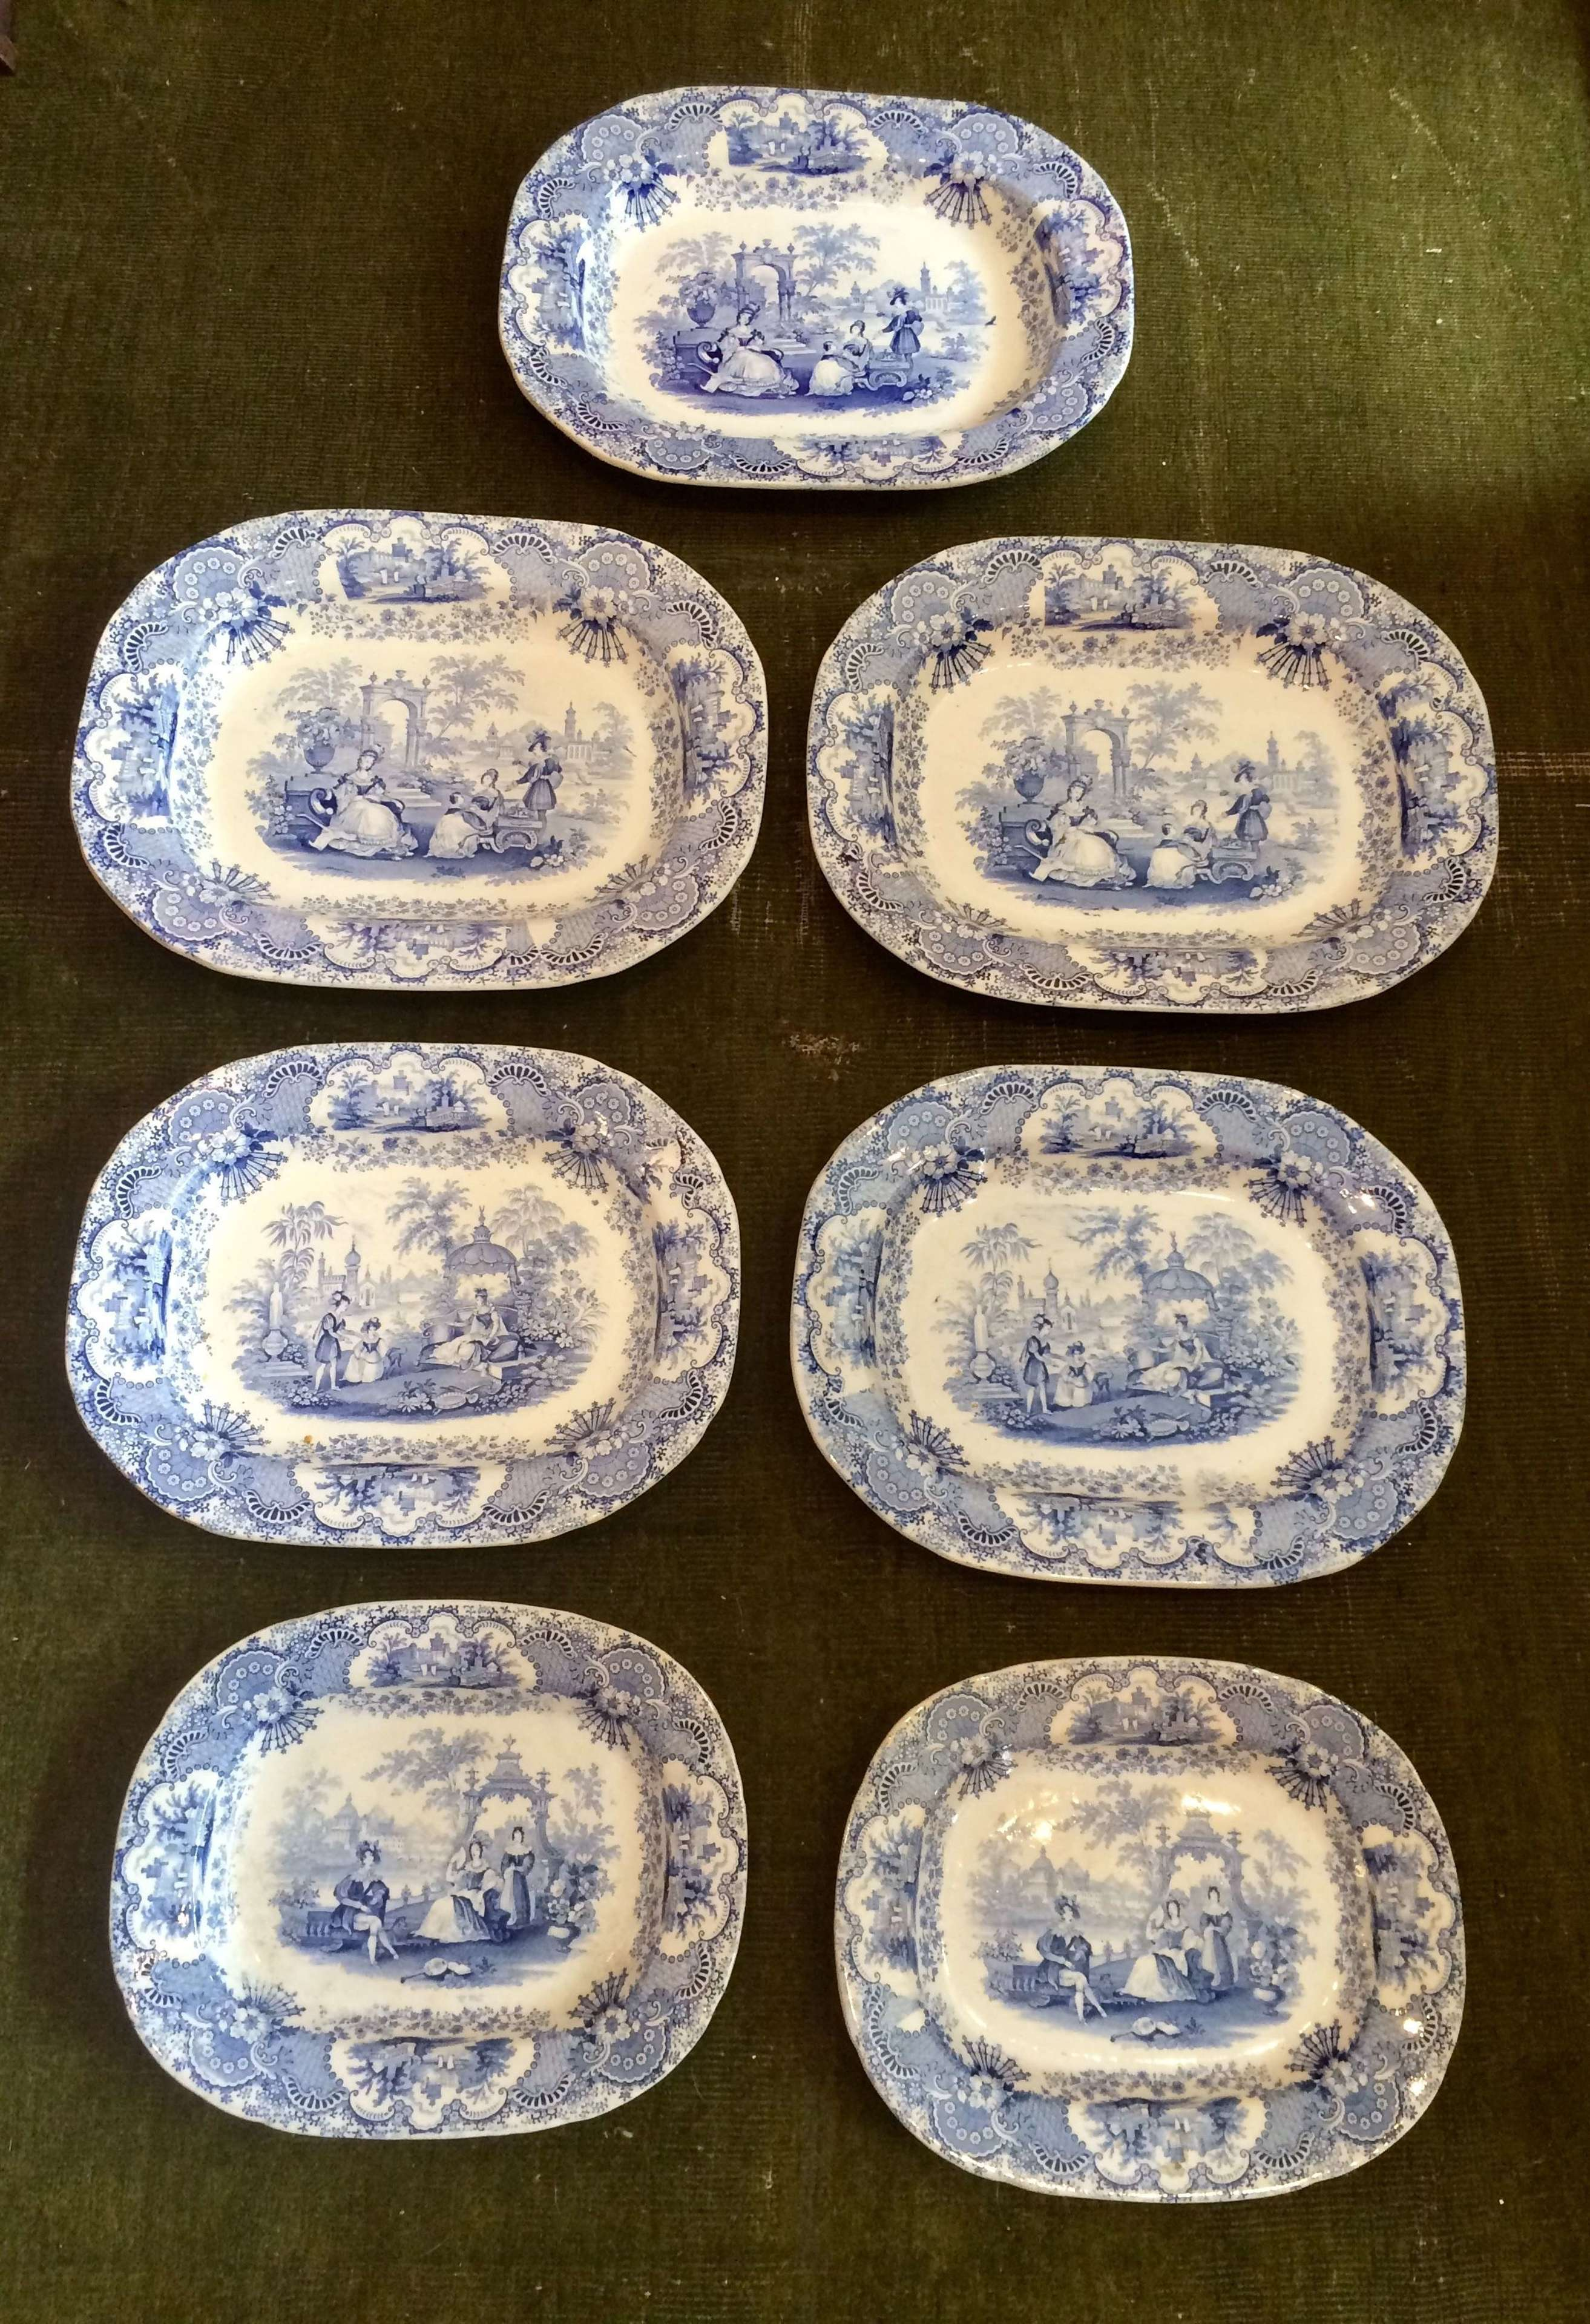 Set of 7 19th century blue and white transferware platters.